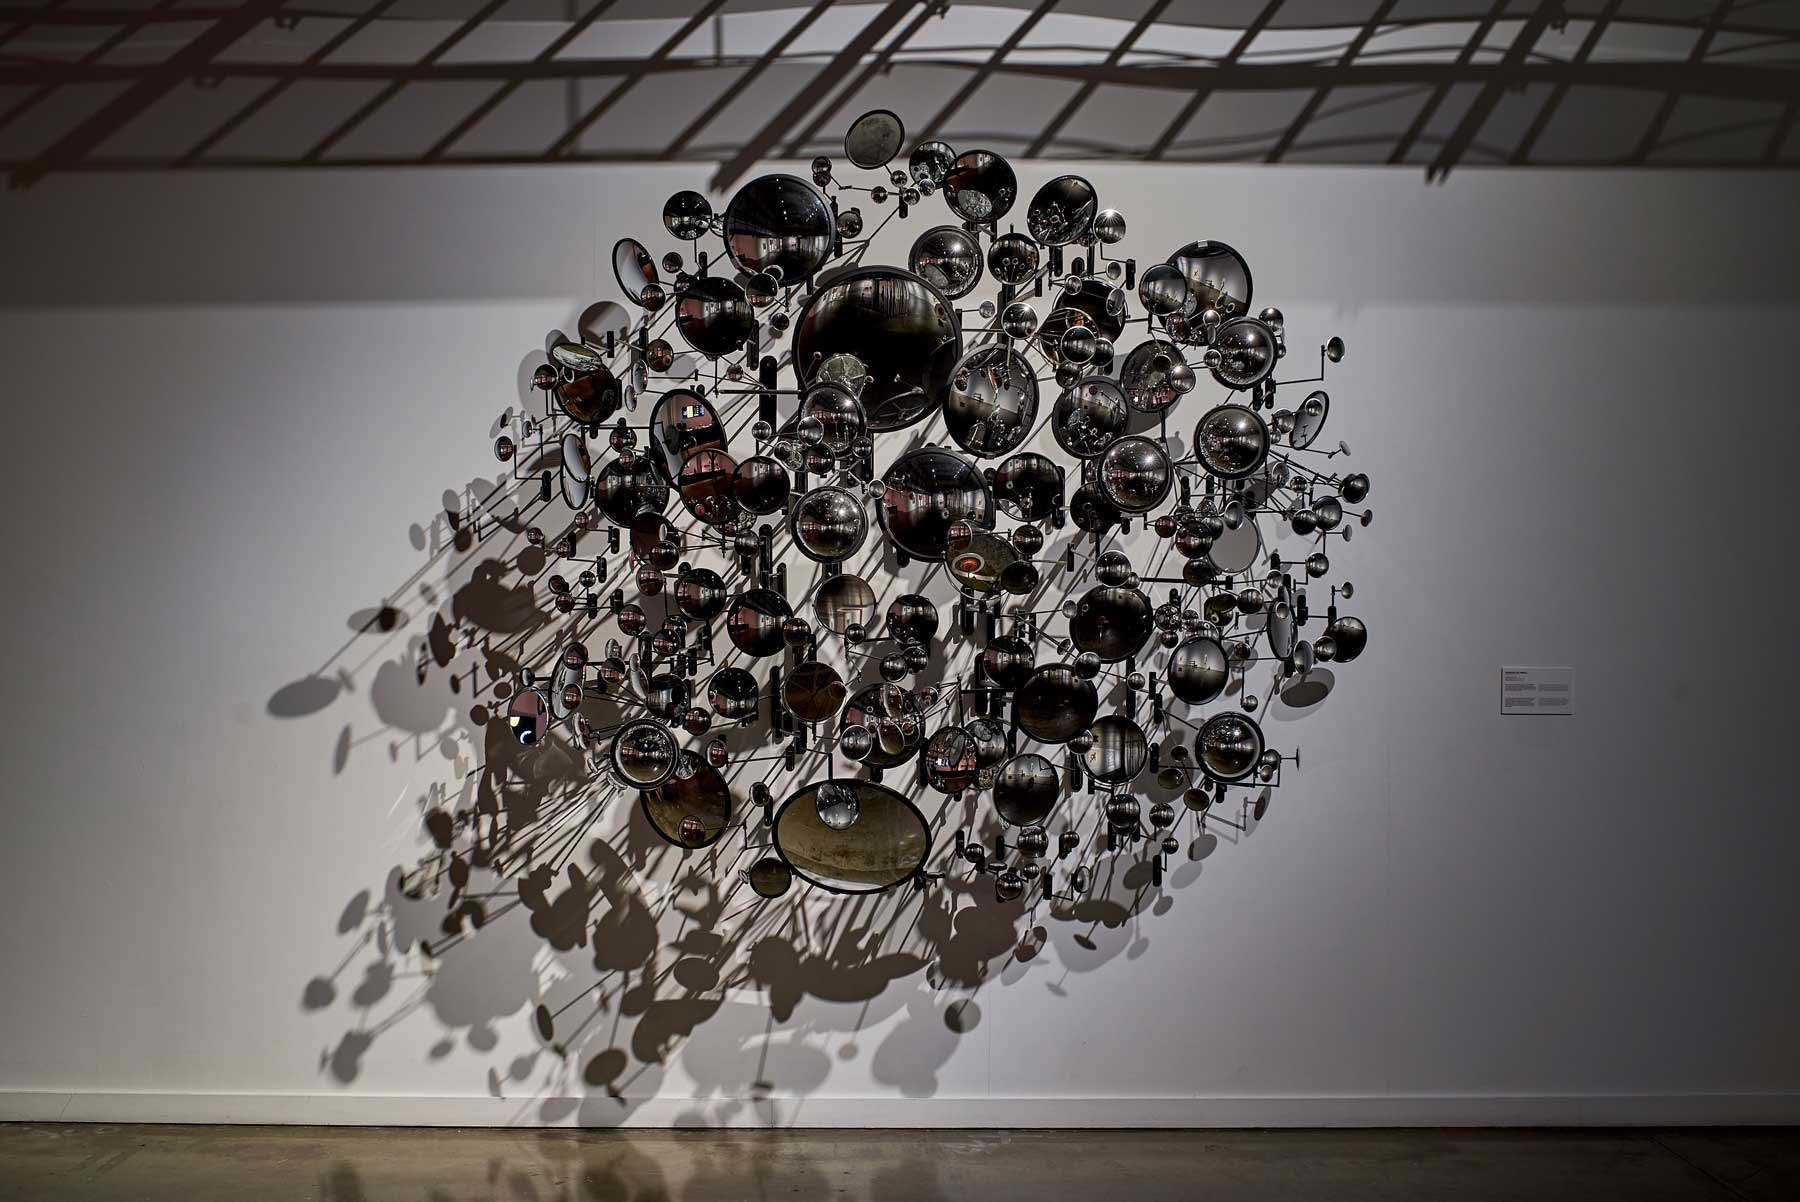 """Graham Caldwell ,  Compound Eye , 2008, Mirrors and steel, 92"""" x 98"""" x 50"""" (234 x 248 x 127 cm). Photo credit: Romain Guilbault"""